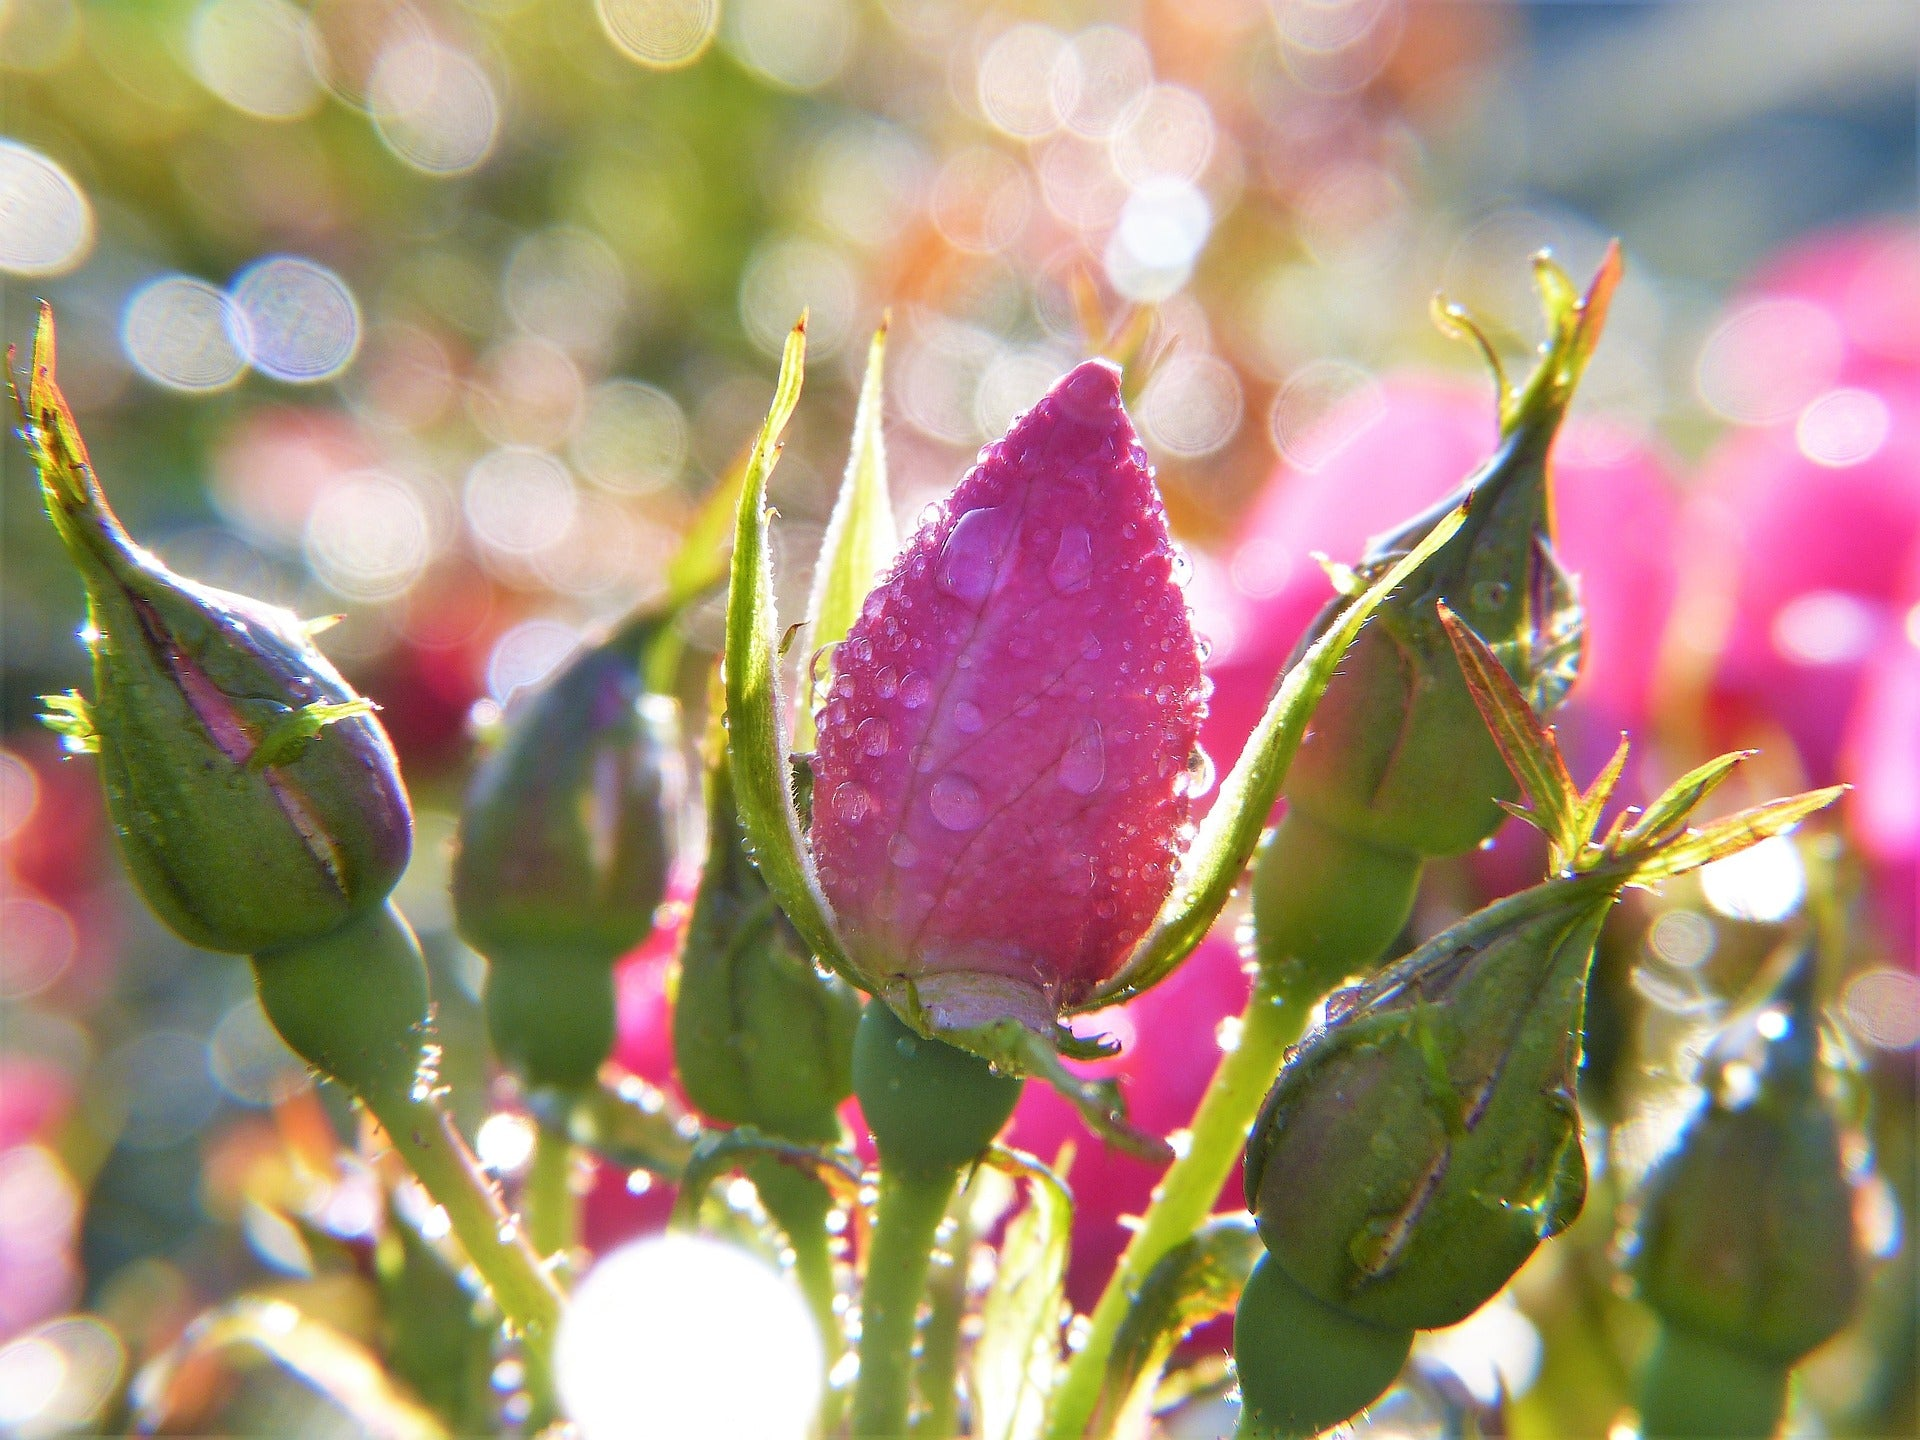 rose absolute essential oil tips